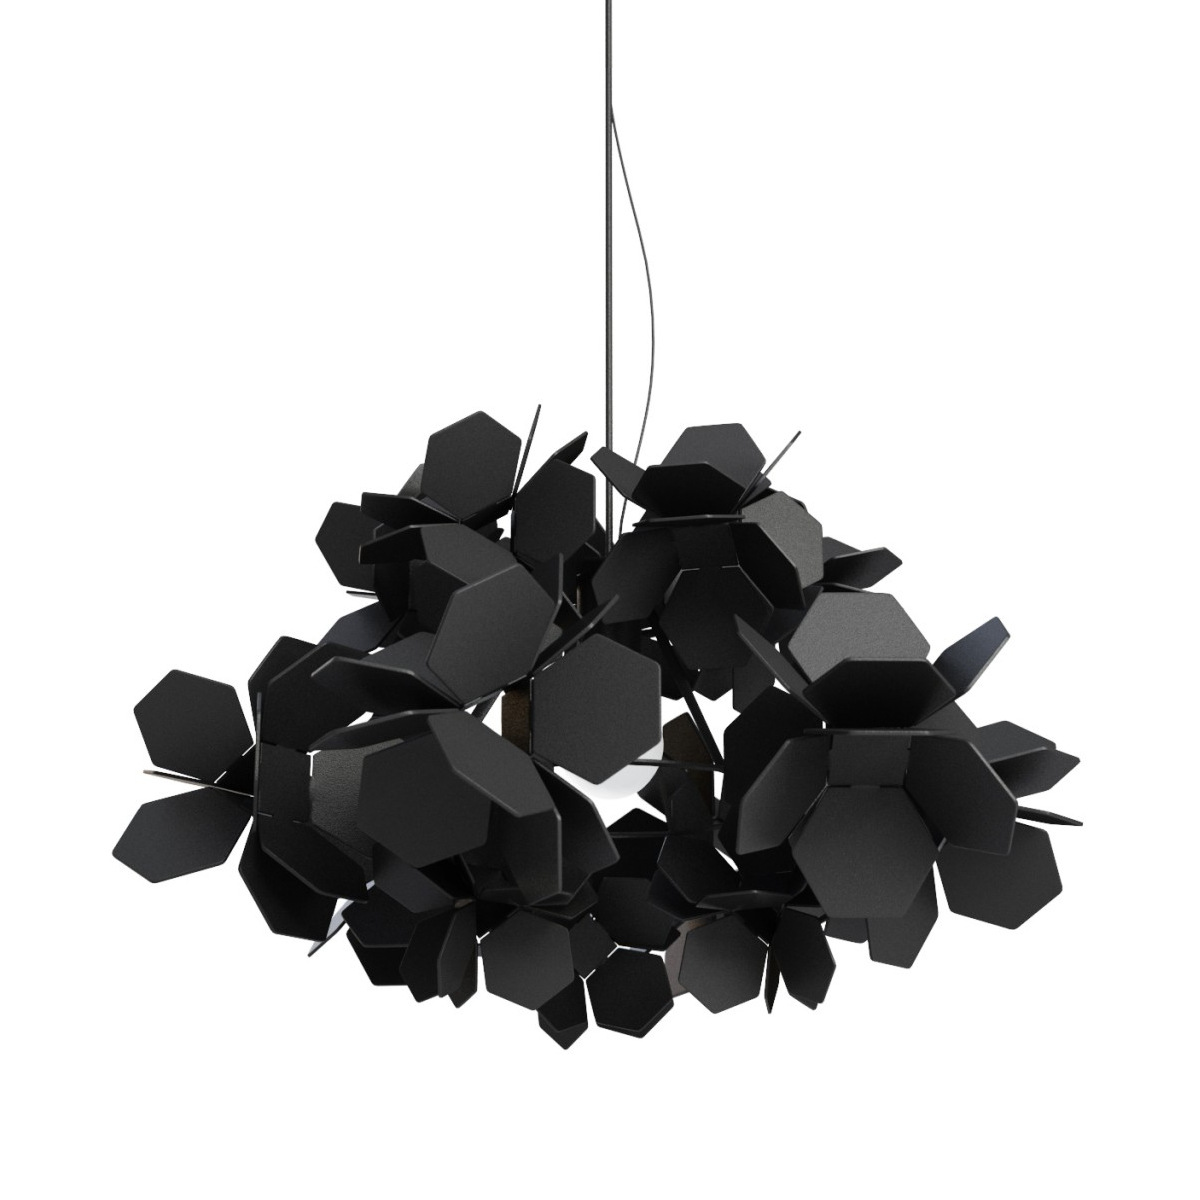 Creative Personality Black Iron Flower Art Led E27 Pendant Light For Living Room Dining Room Bedroom Shop Dia 65cm 1848 lang qing court iron creative flower green dill multilayer wooden living room interior floor spider showy flower pots